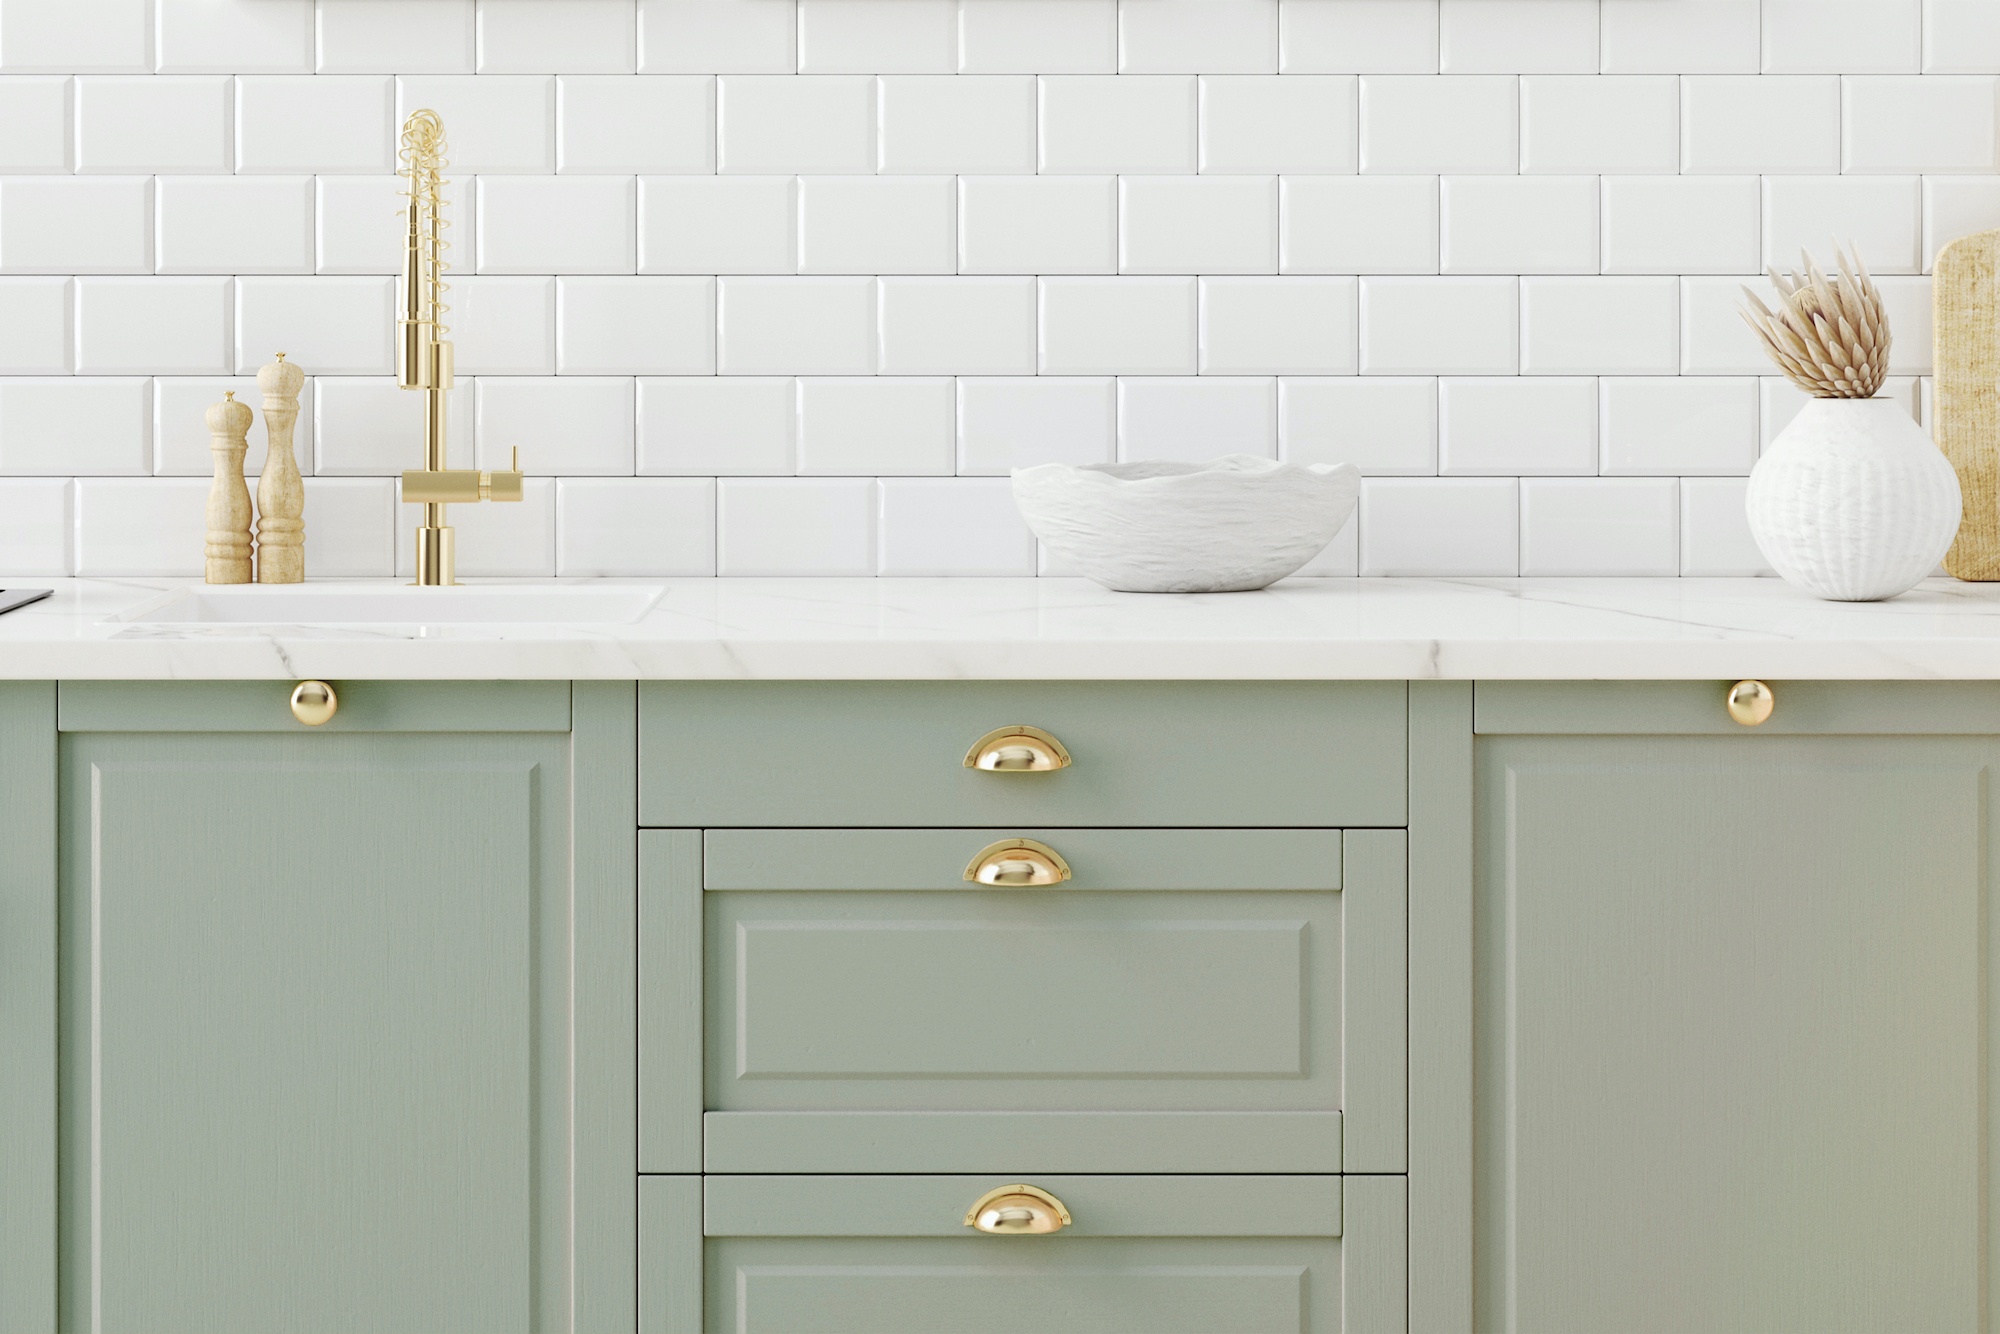 Kitchen with green cabinets and gold hardware